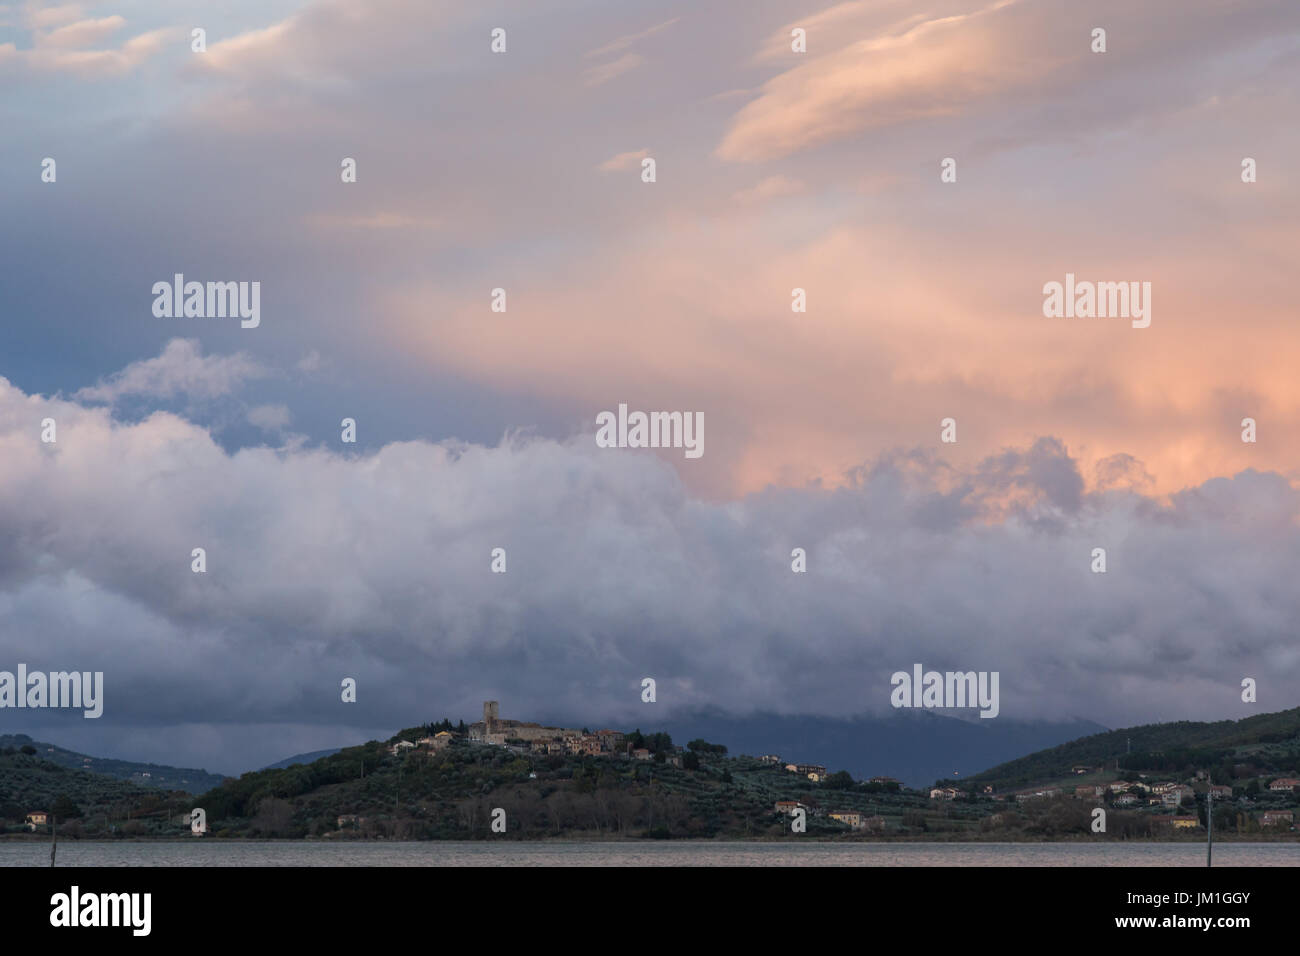 Spectacular clouds at sunset over S. Savino town, near Trasimeno lake (Umbria, Italy) - Stock Image